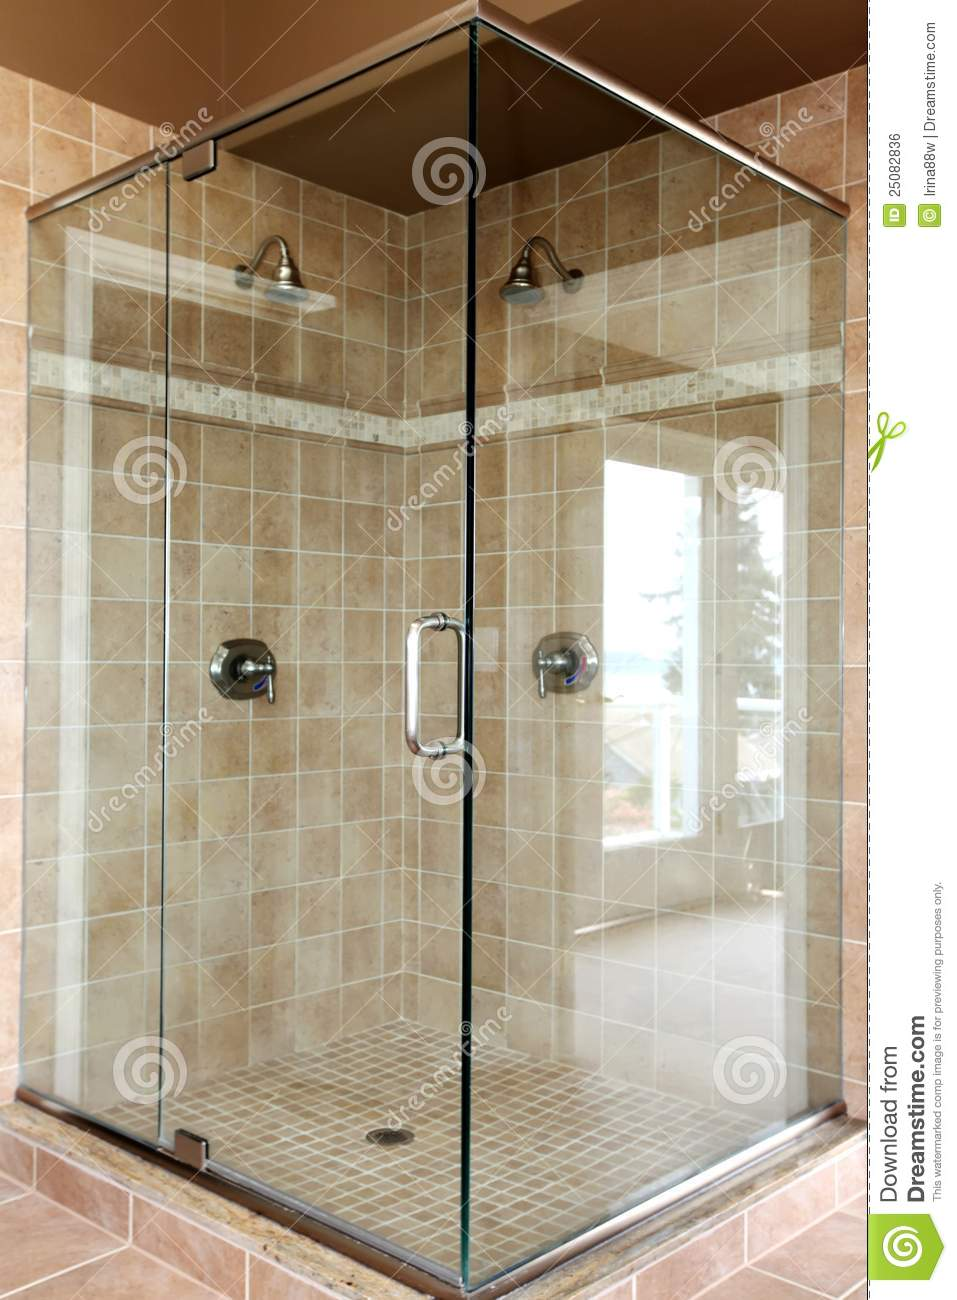 Modern New Glass Walk In Shower With Beige Tiles Stock